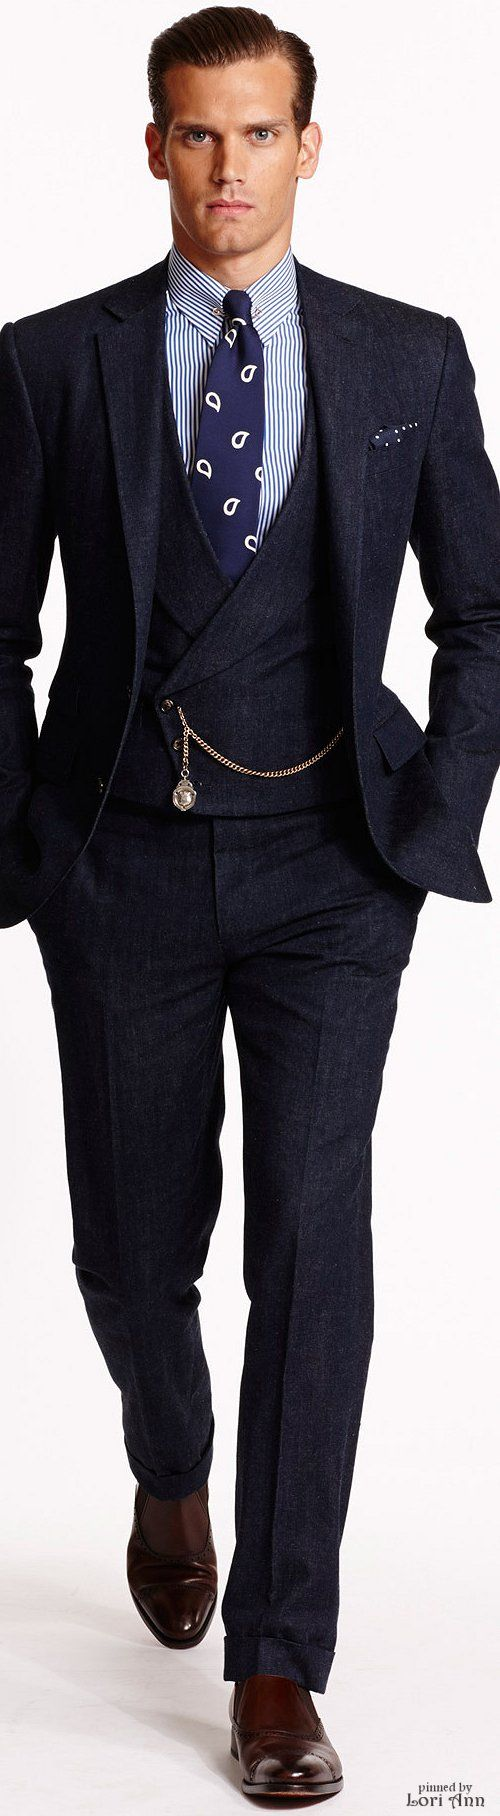 Ralph Lauren 2015   Menswear   Men's Fashion   Men's Outfit for Spring/Summer   Sharp and Sophisticated   Moda Masculina   Shop at designerclothingfans.com